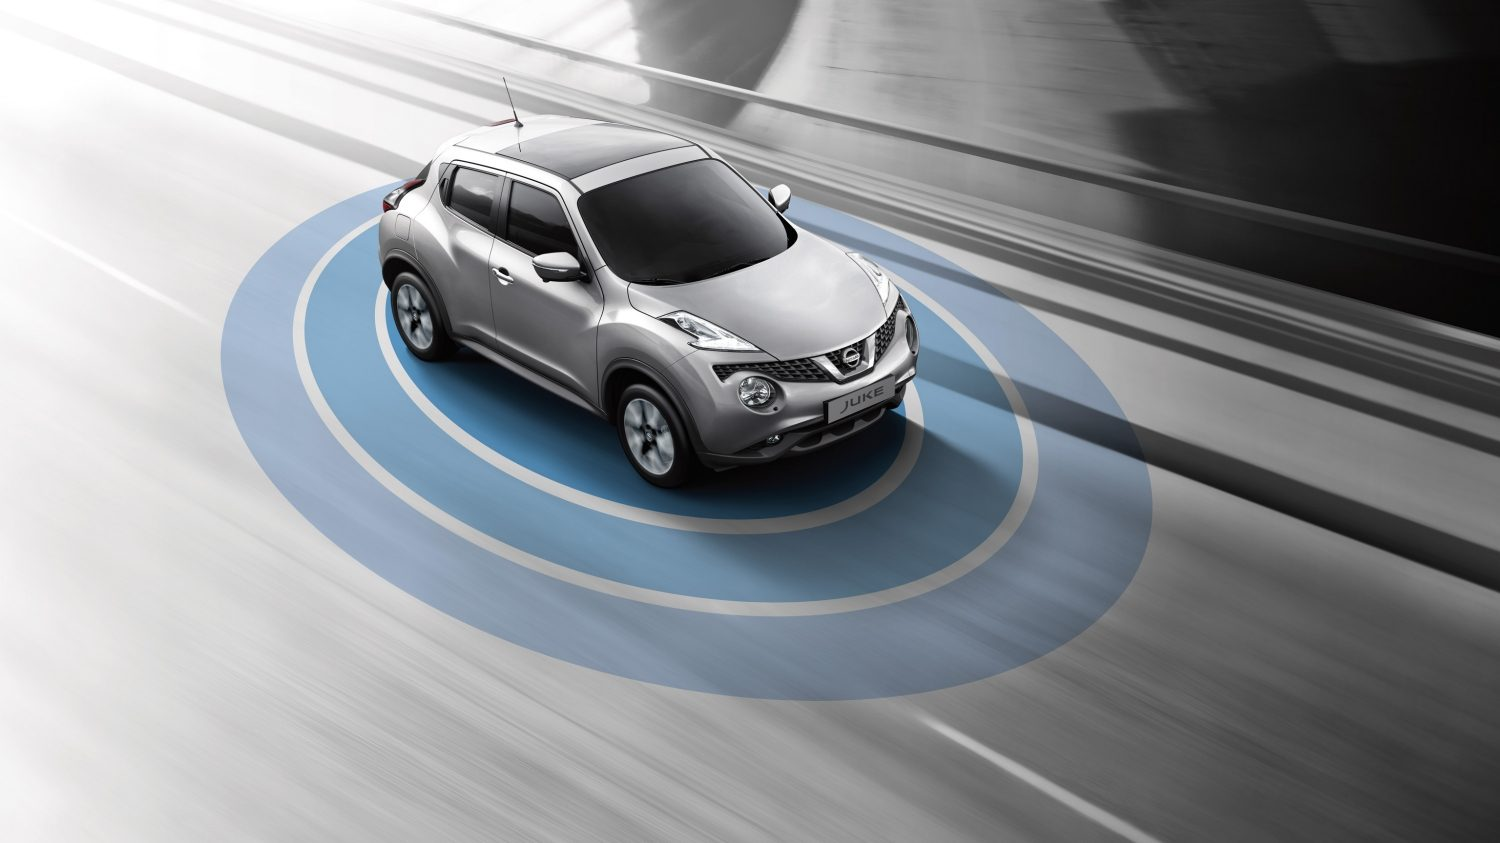 Nissan Juke crossover bil– Safety shield system